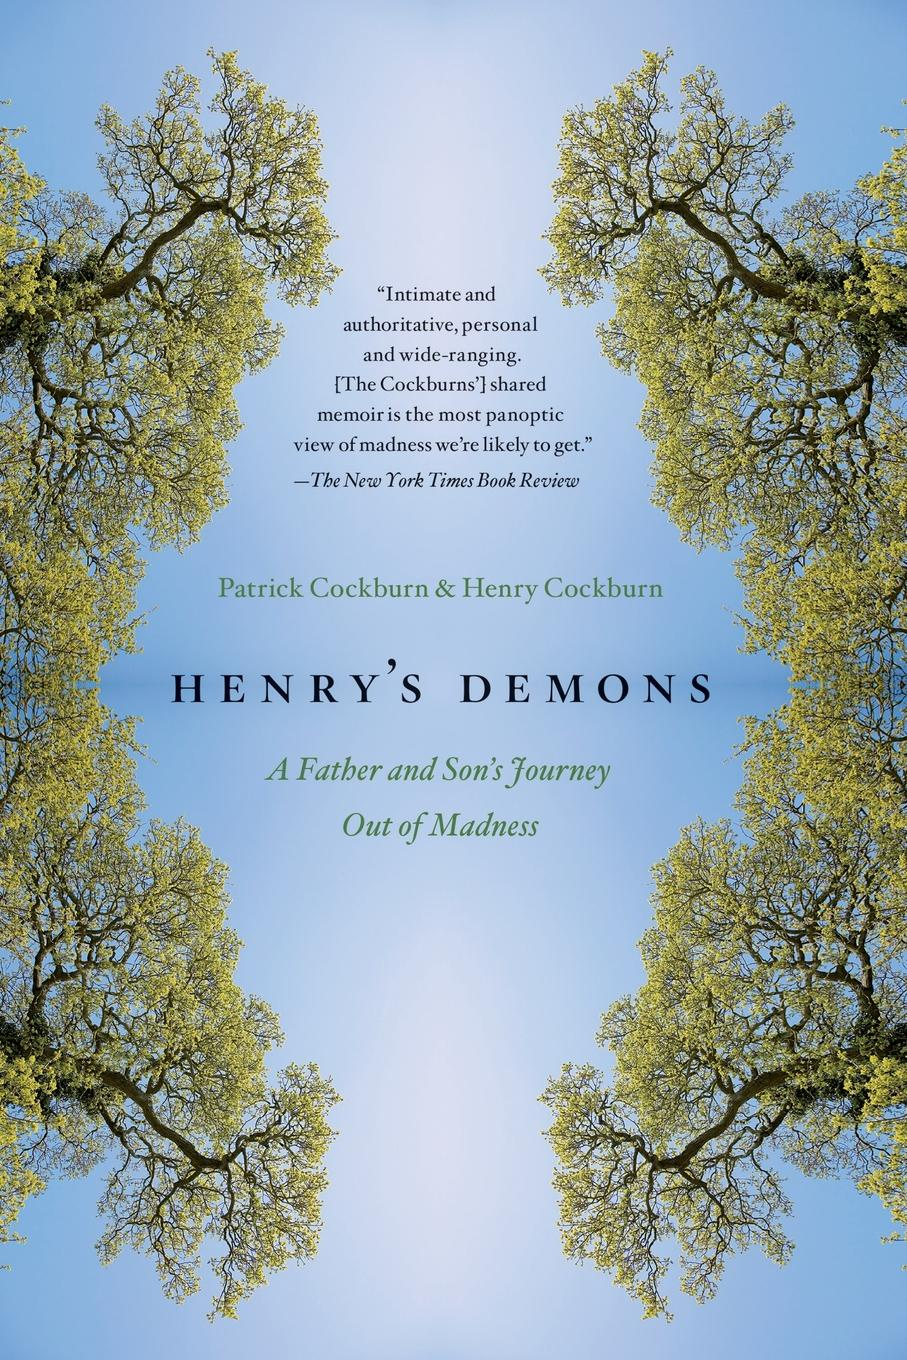 лучшая цена Patrick Cockburn, Henry Cockburn Henry's Demons. A Father and Son's Journey Out of Madness